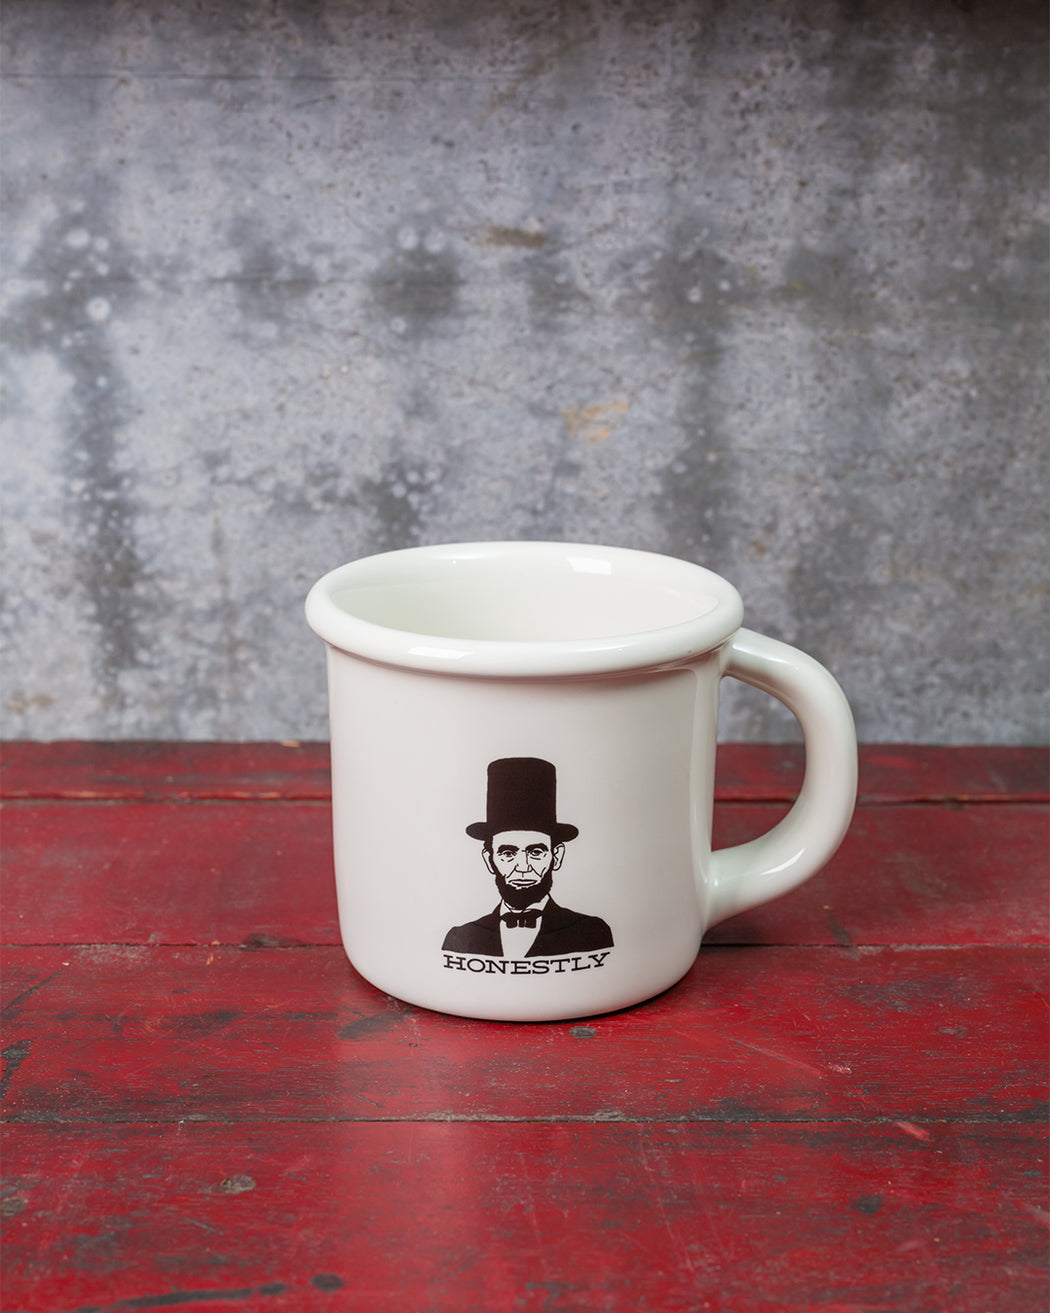 """Honestly"" Abraham Lincoln Mug - Fishs Eddy"